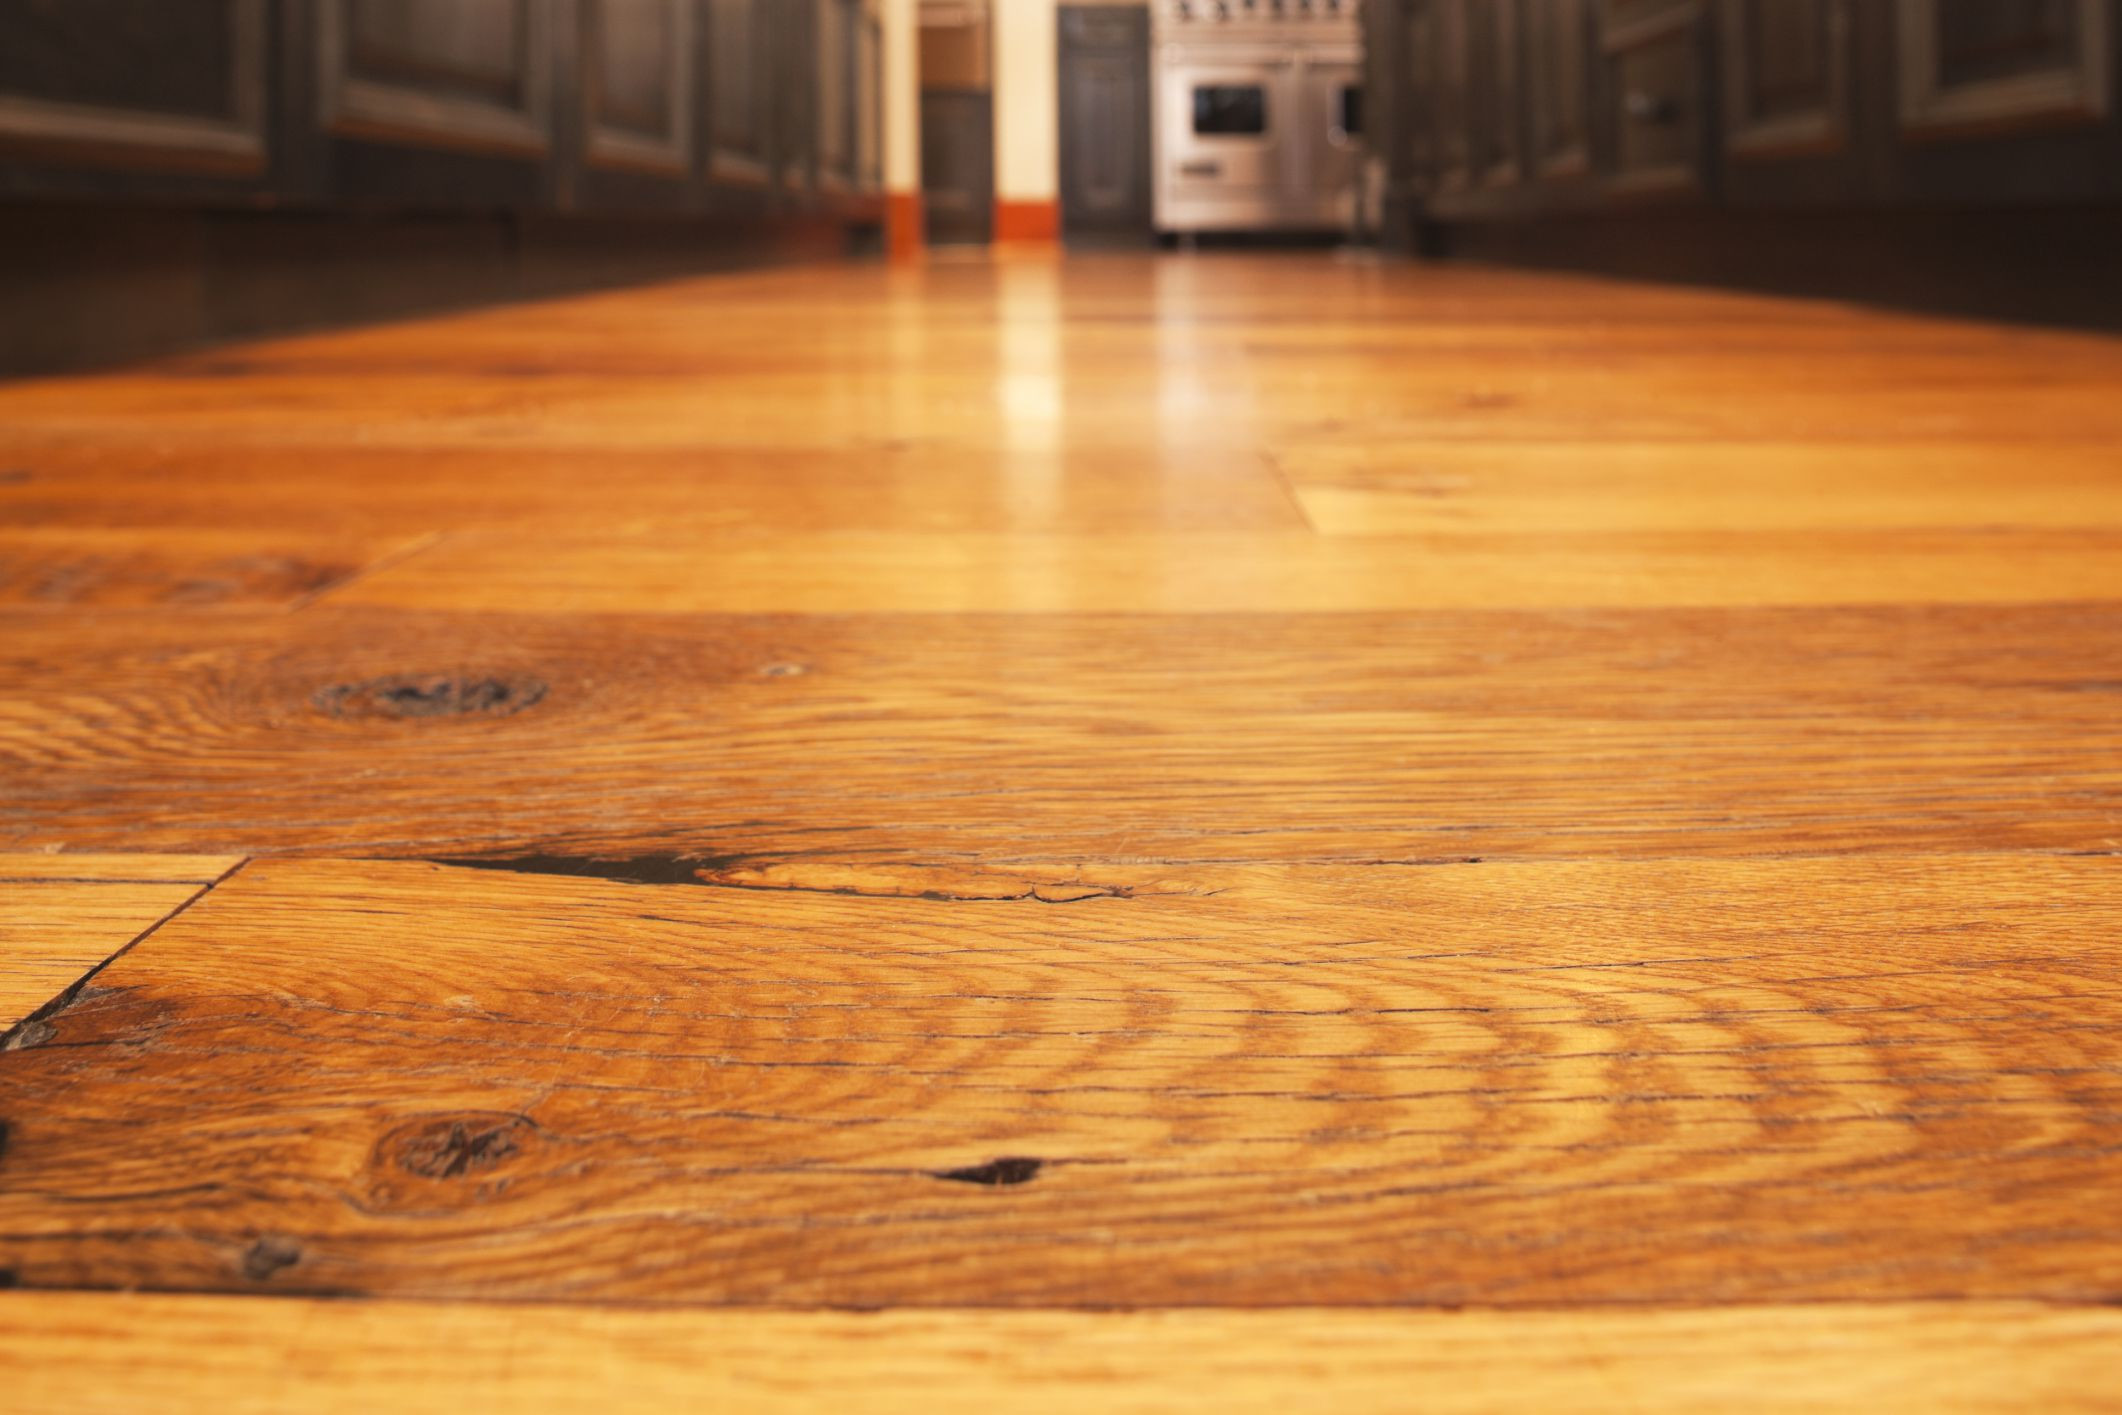 Oak Hardwood Flooring Pros and Cons Of why A Microbevel is On Your Flooring Regarding Wood Floor Closeup Microbevel 56a4a13f5f9b58b7d0d7e5f4